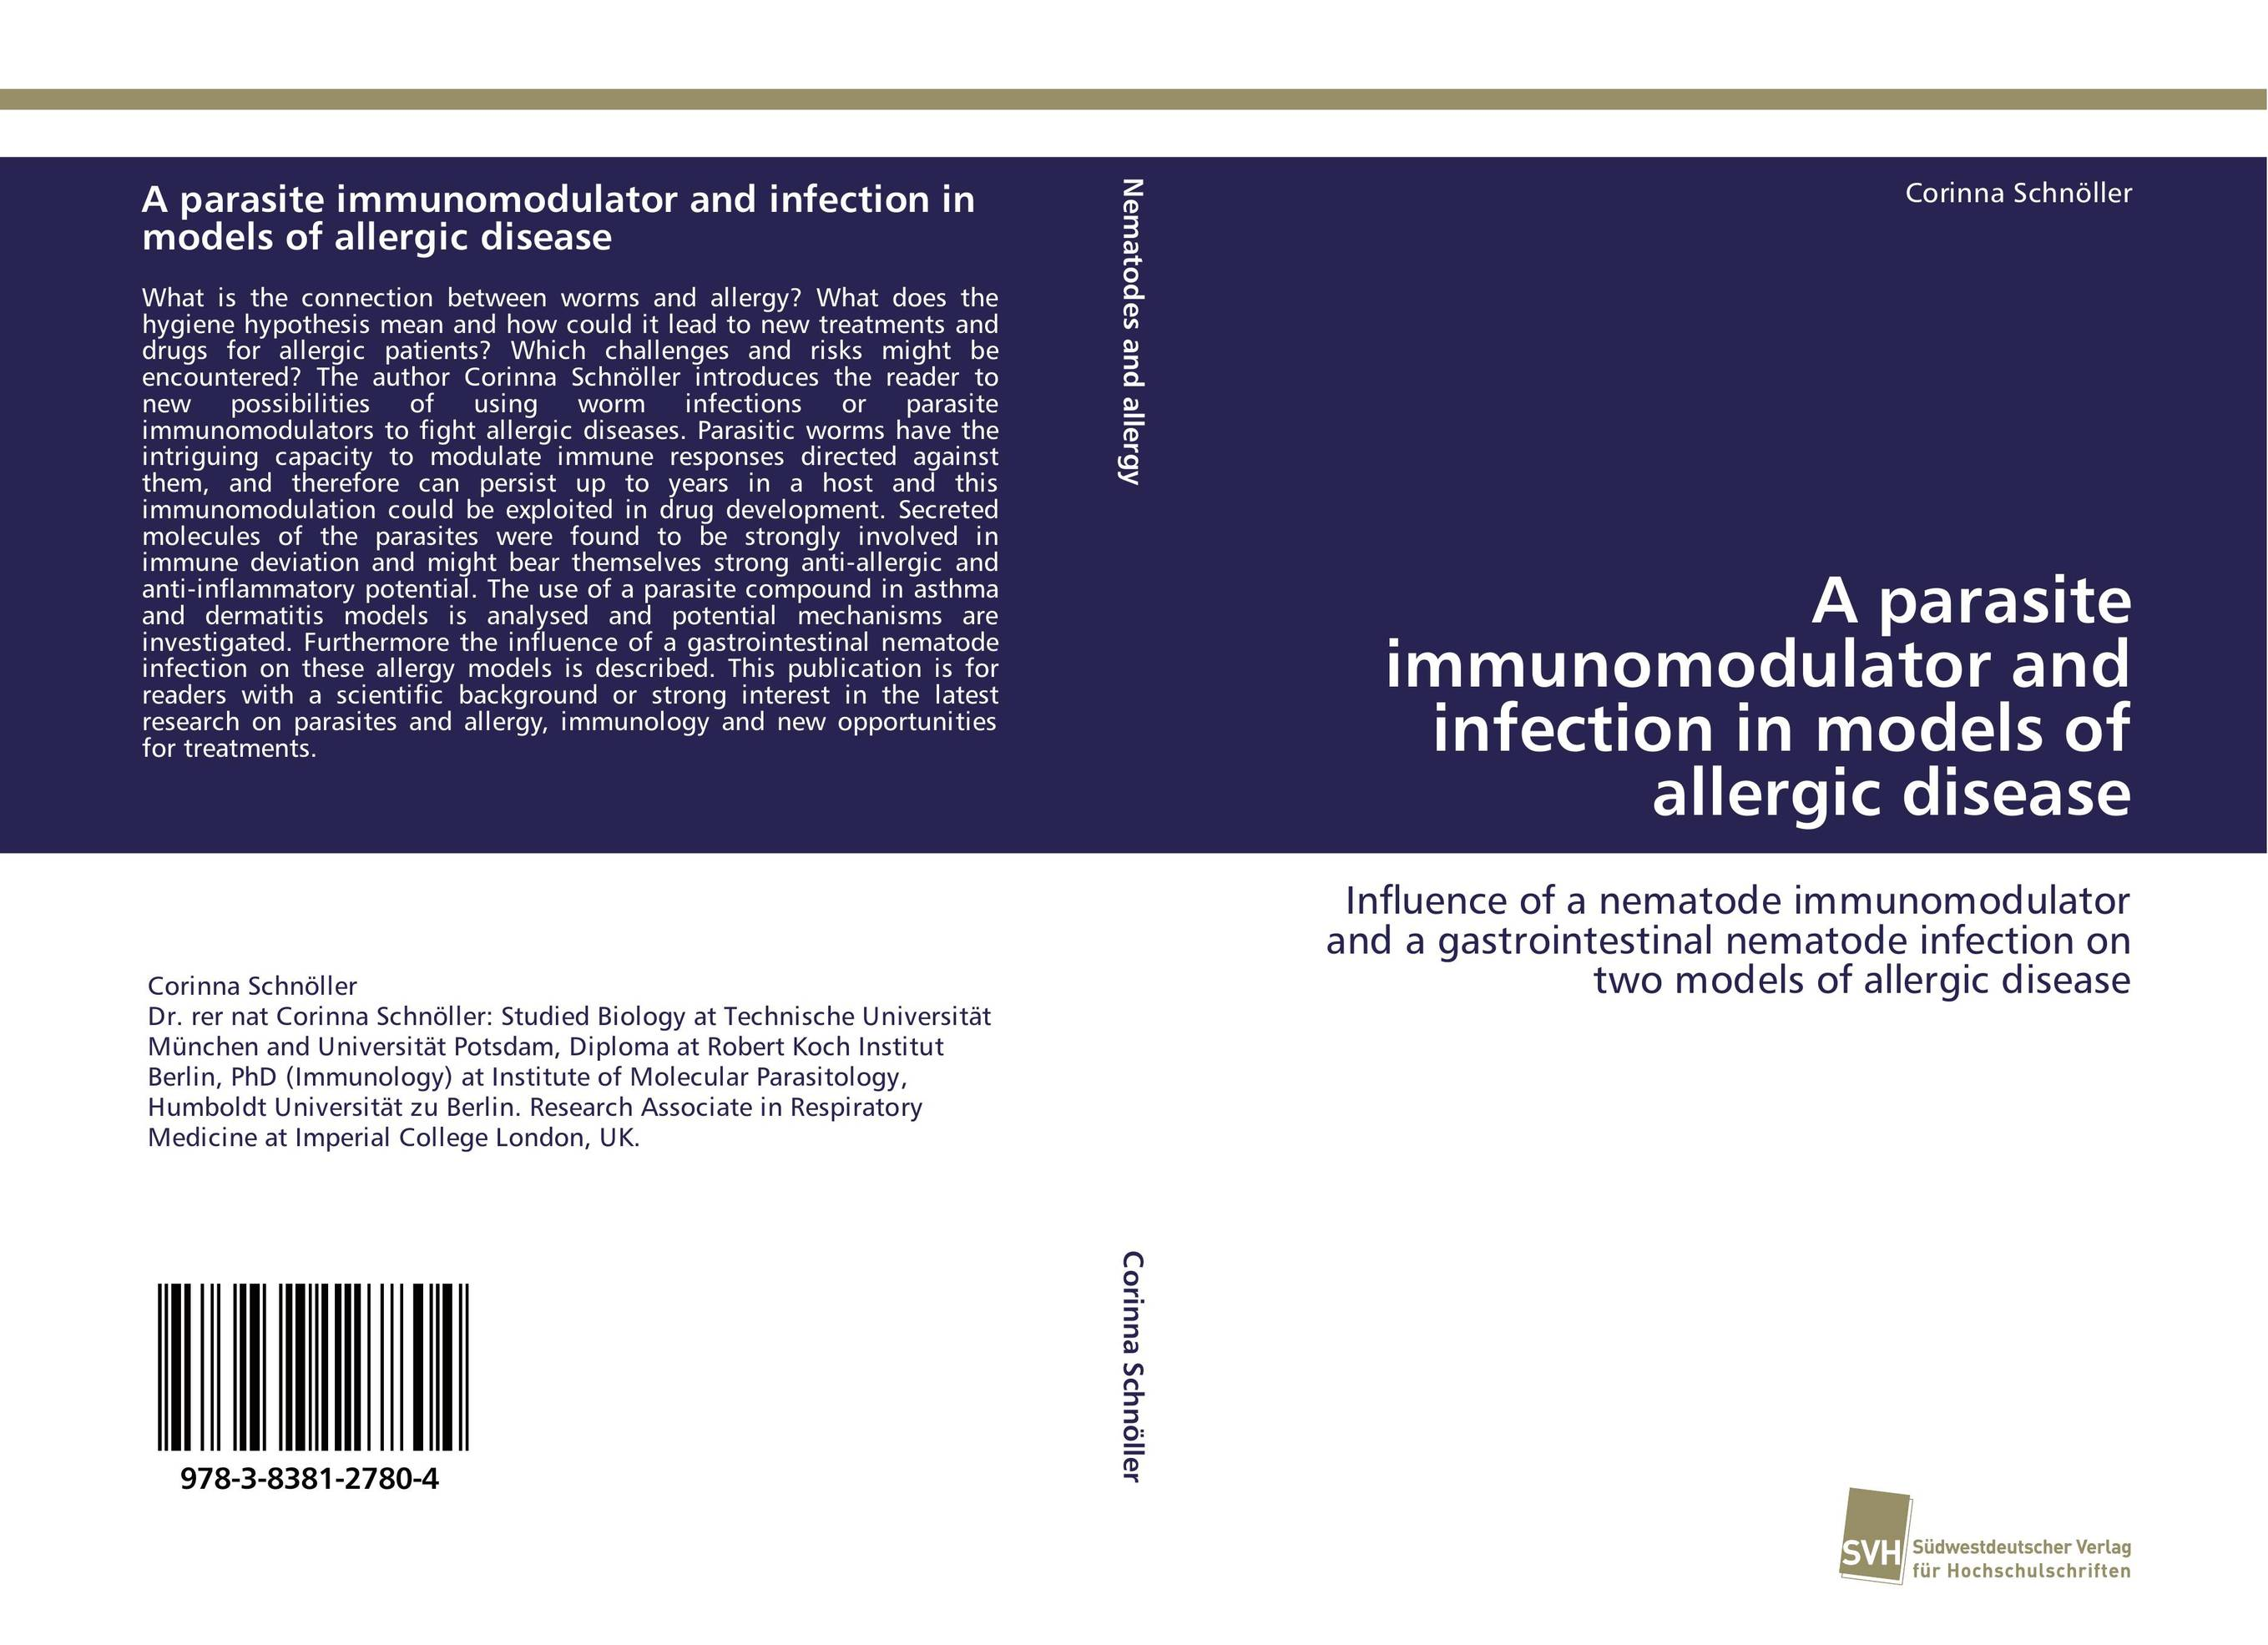 A parasite immunomodulator and infection in models of allergic disease hanson progress in allergy – host parasite relat ionsin gram–negative infections